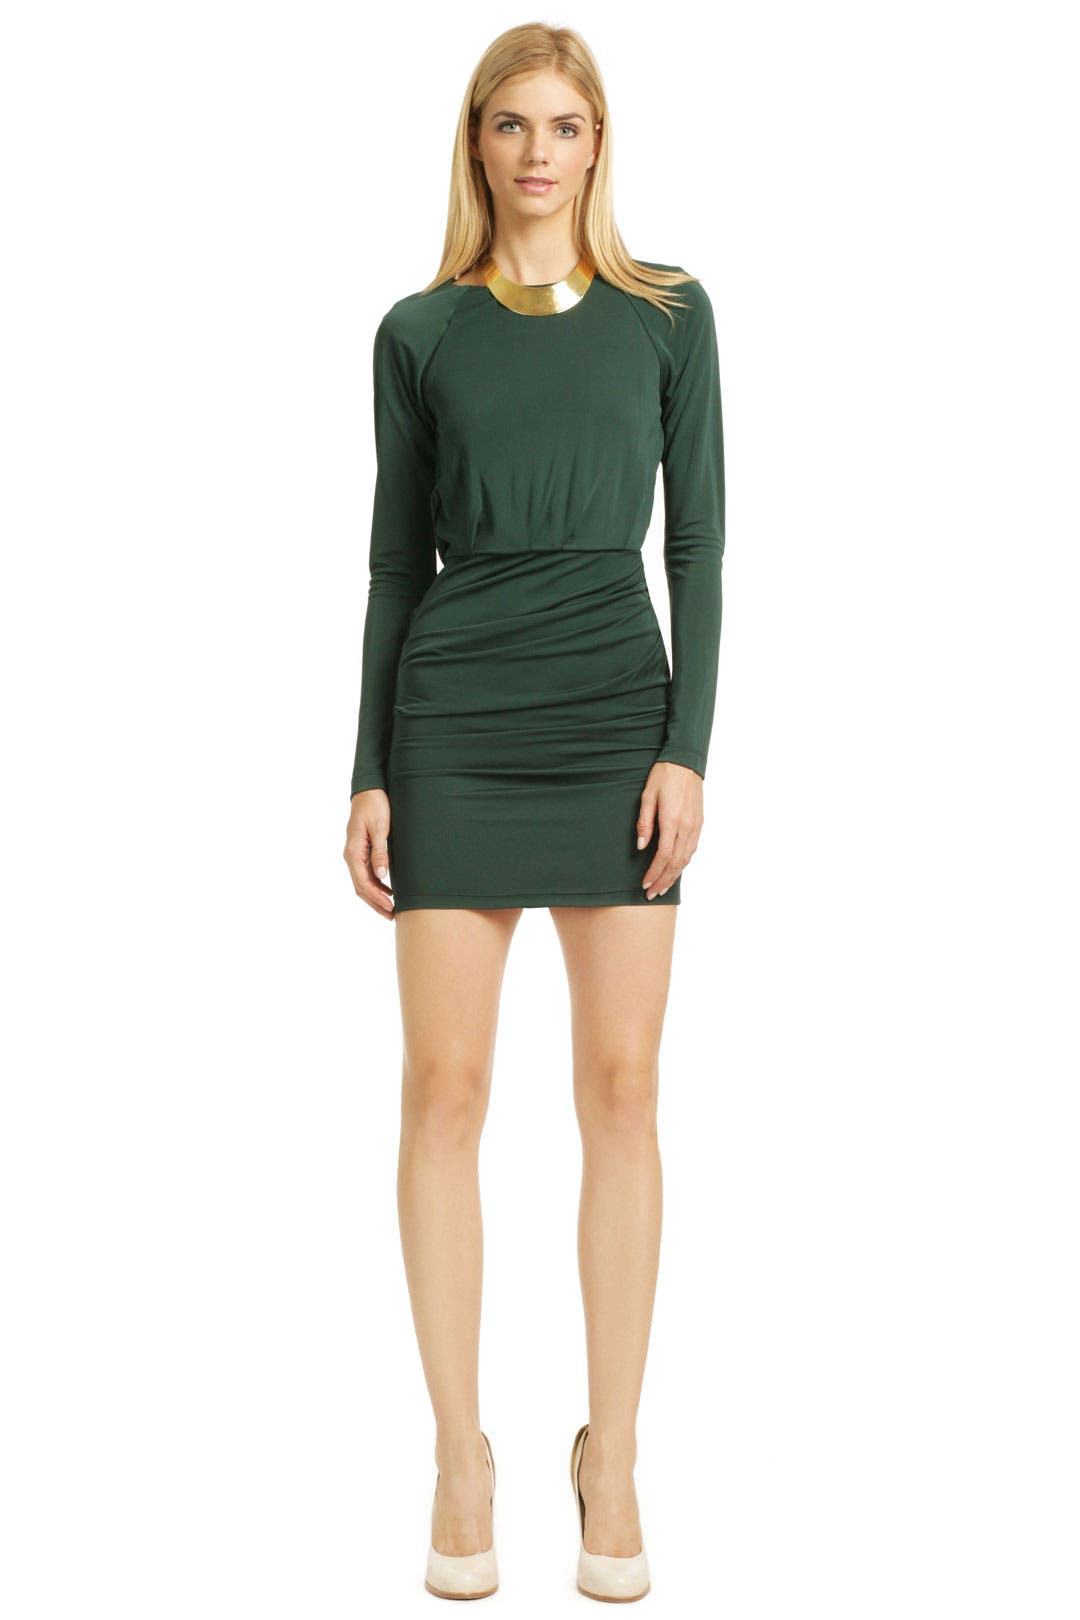 Keep It Classy Dress By Cut 25 For 44 Rent The Runway